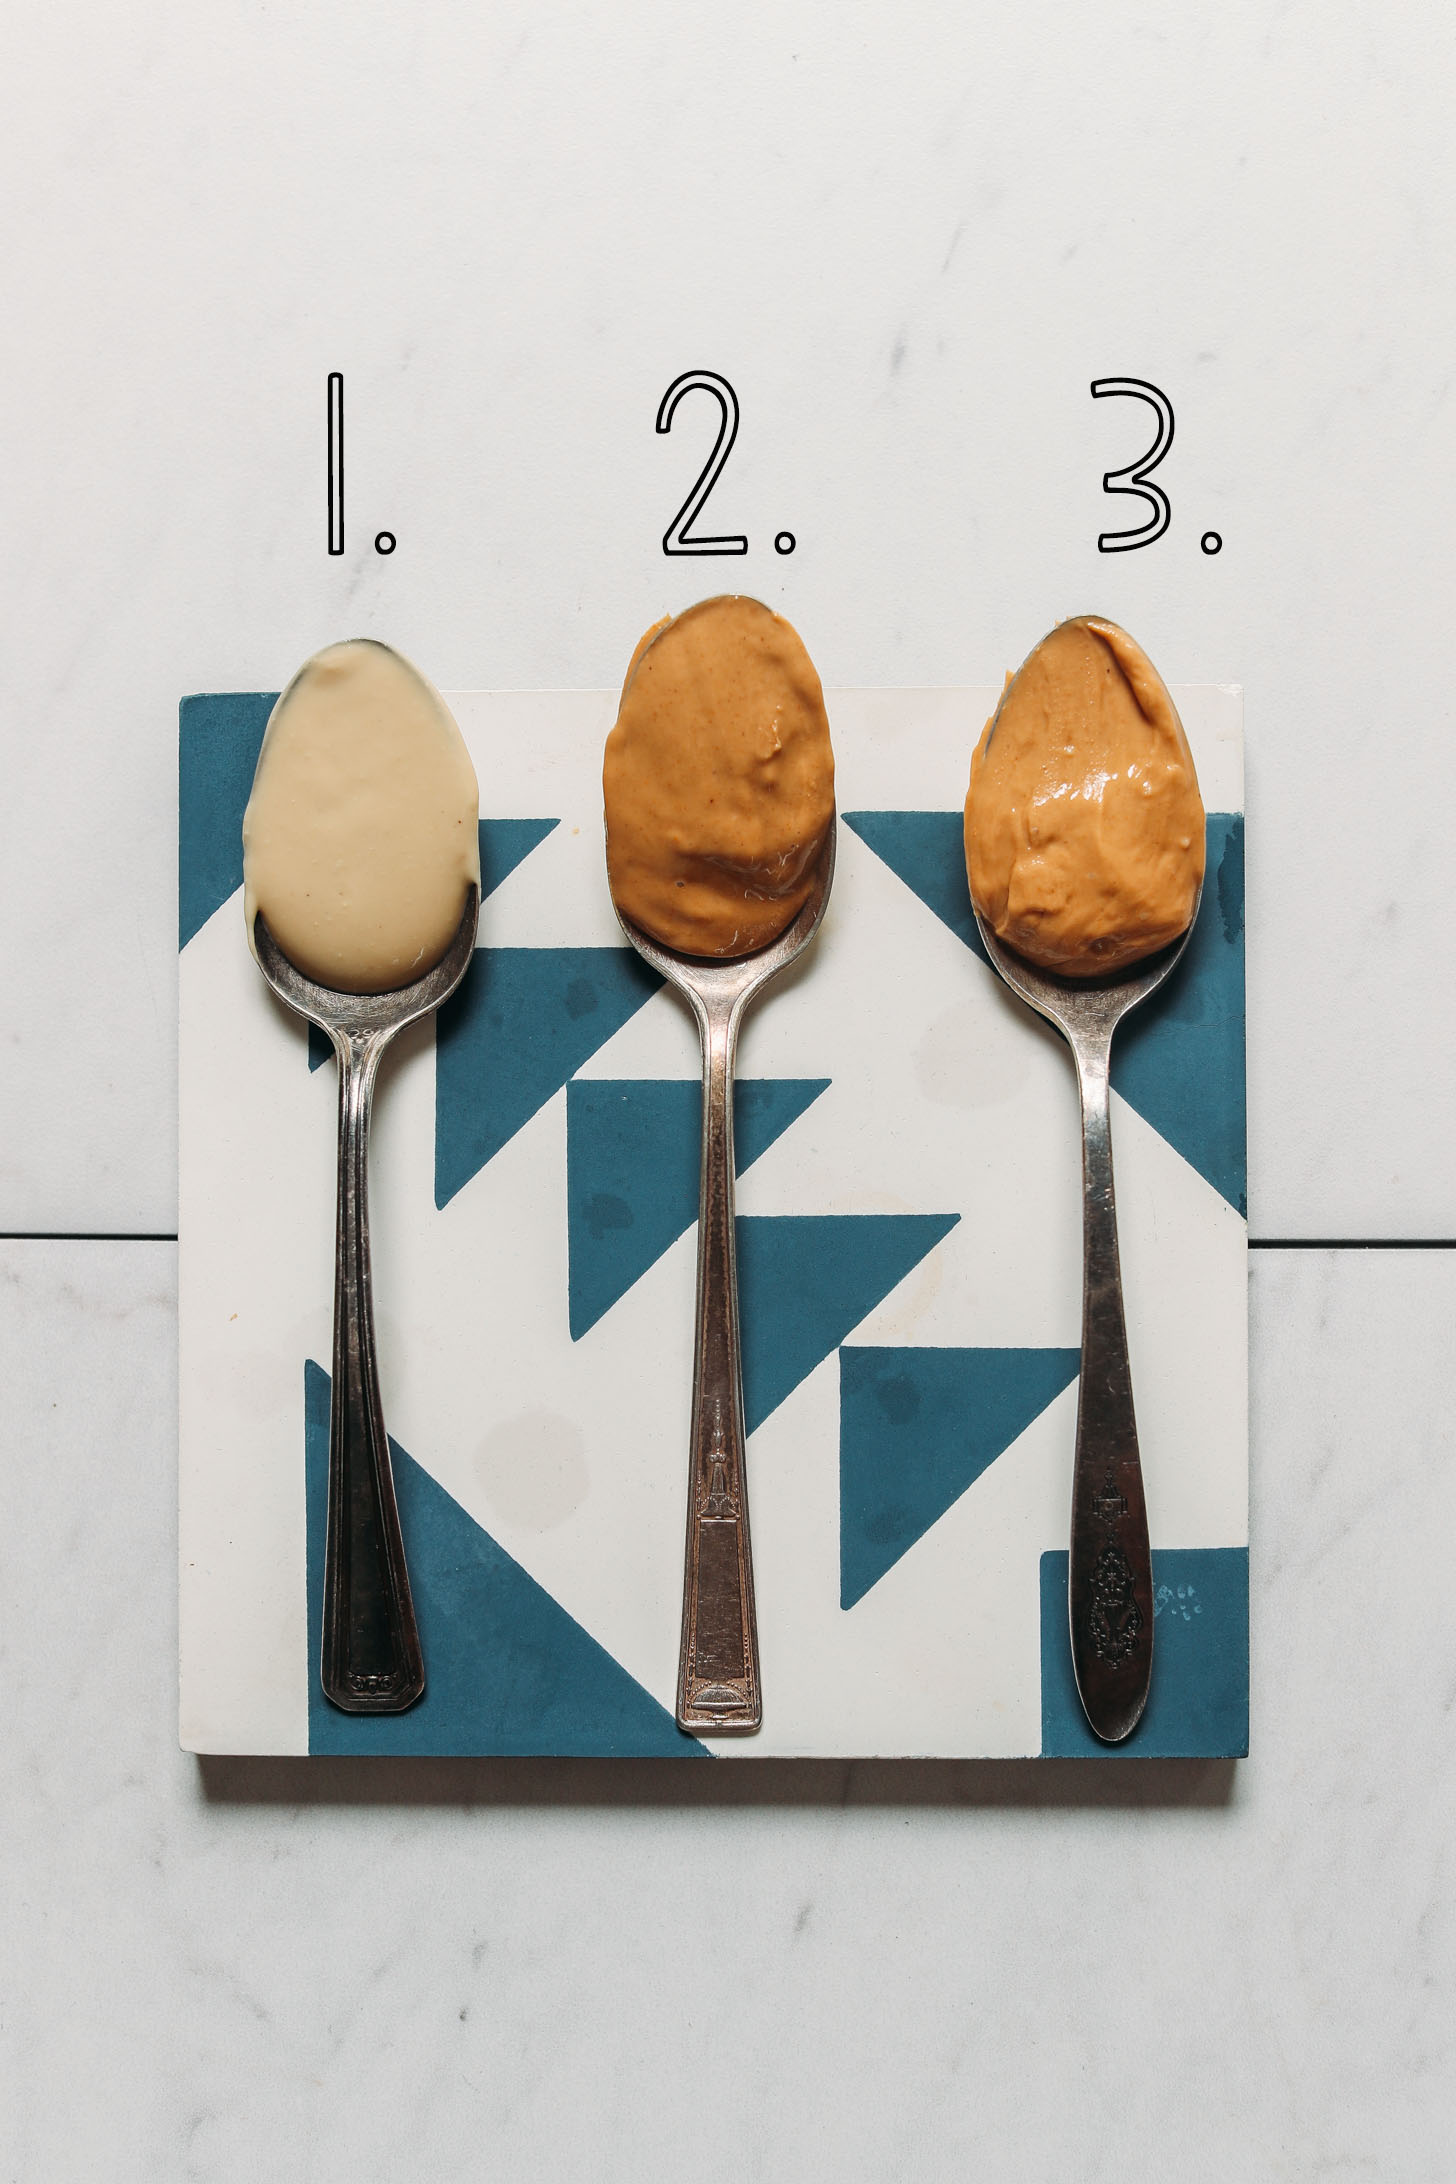 Three spoonfuls of our top 3 favorite cashew butter brands